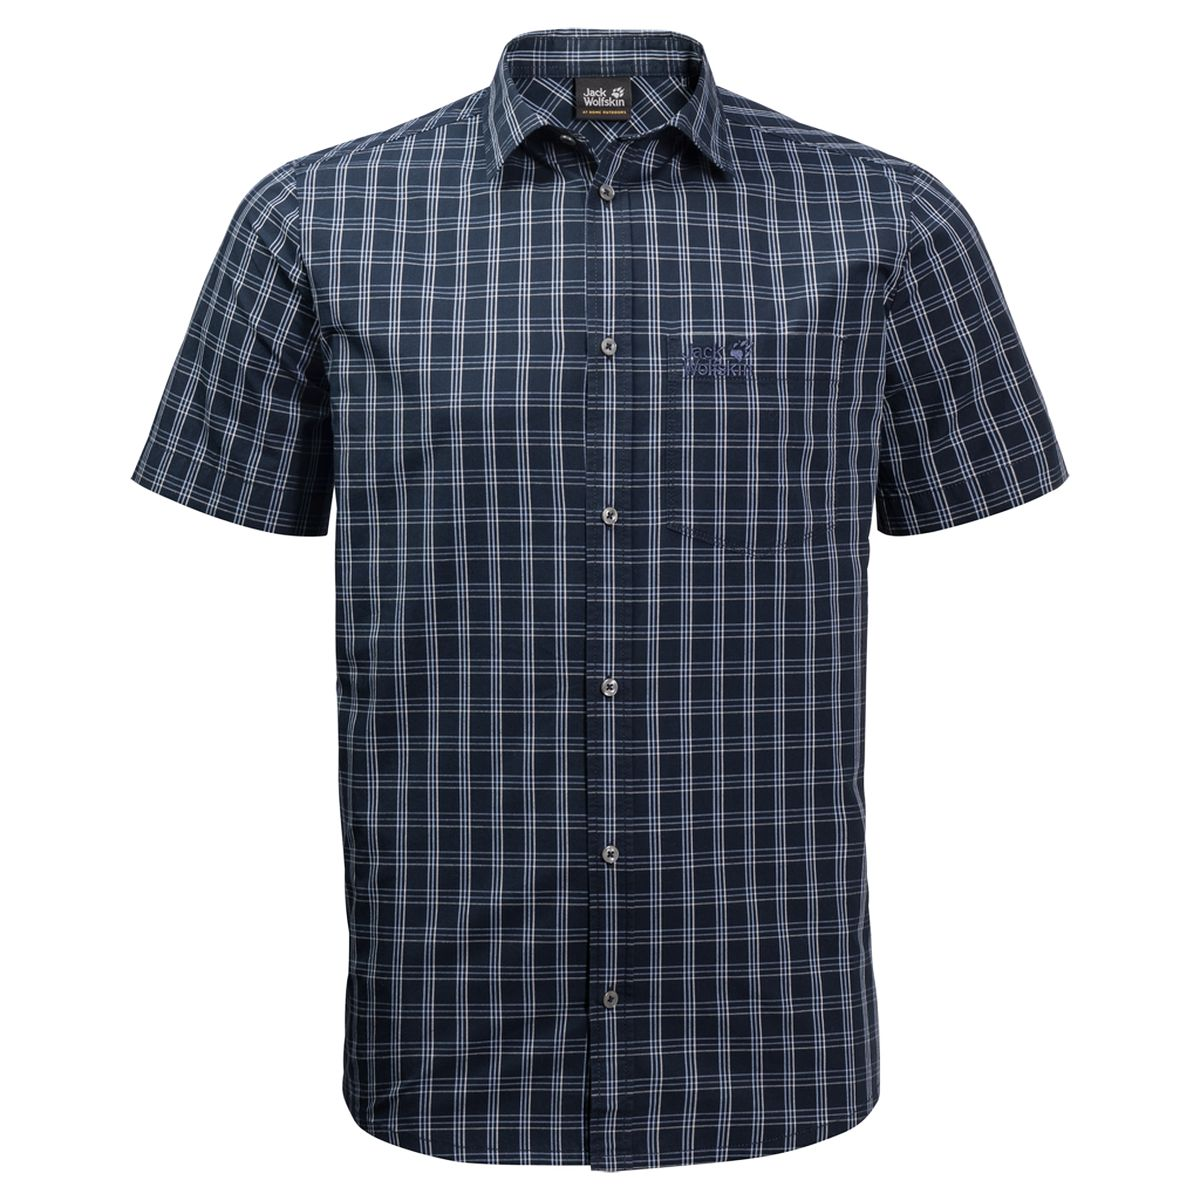 Рубашка Jack Wolfskin Hot Springs Shirt M рубашка мужская jack wolfskin hot springs shirt цвет серо голубой 1402331 7919 размер s 42